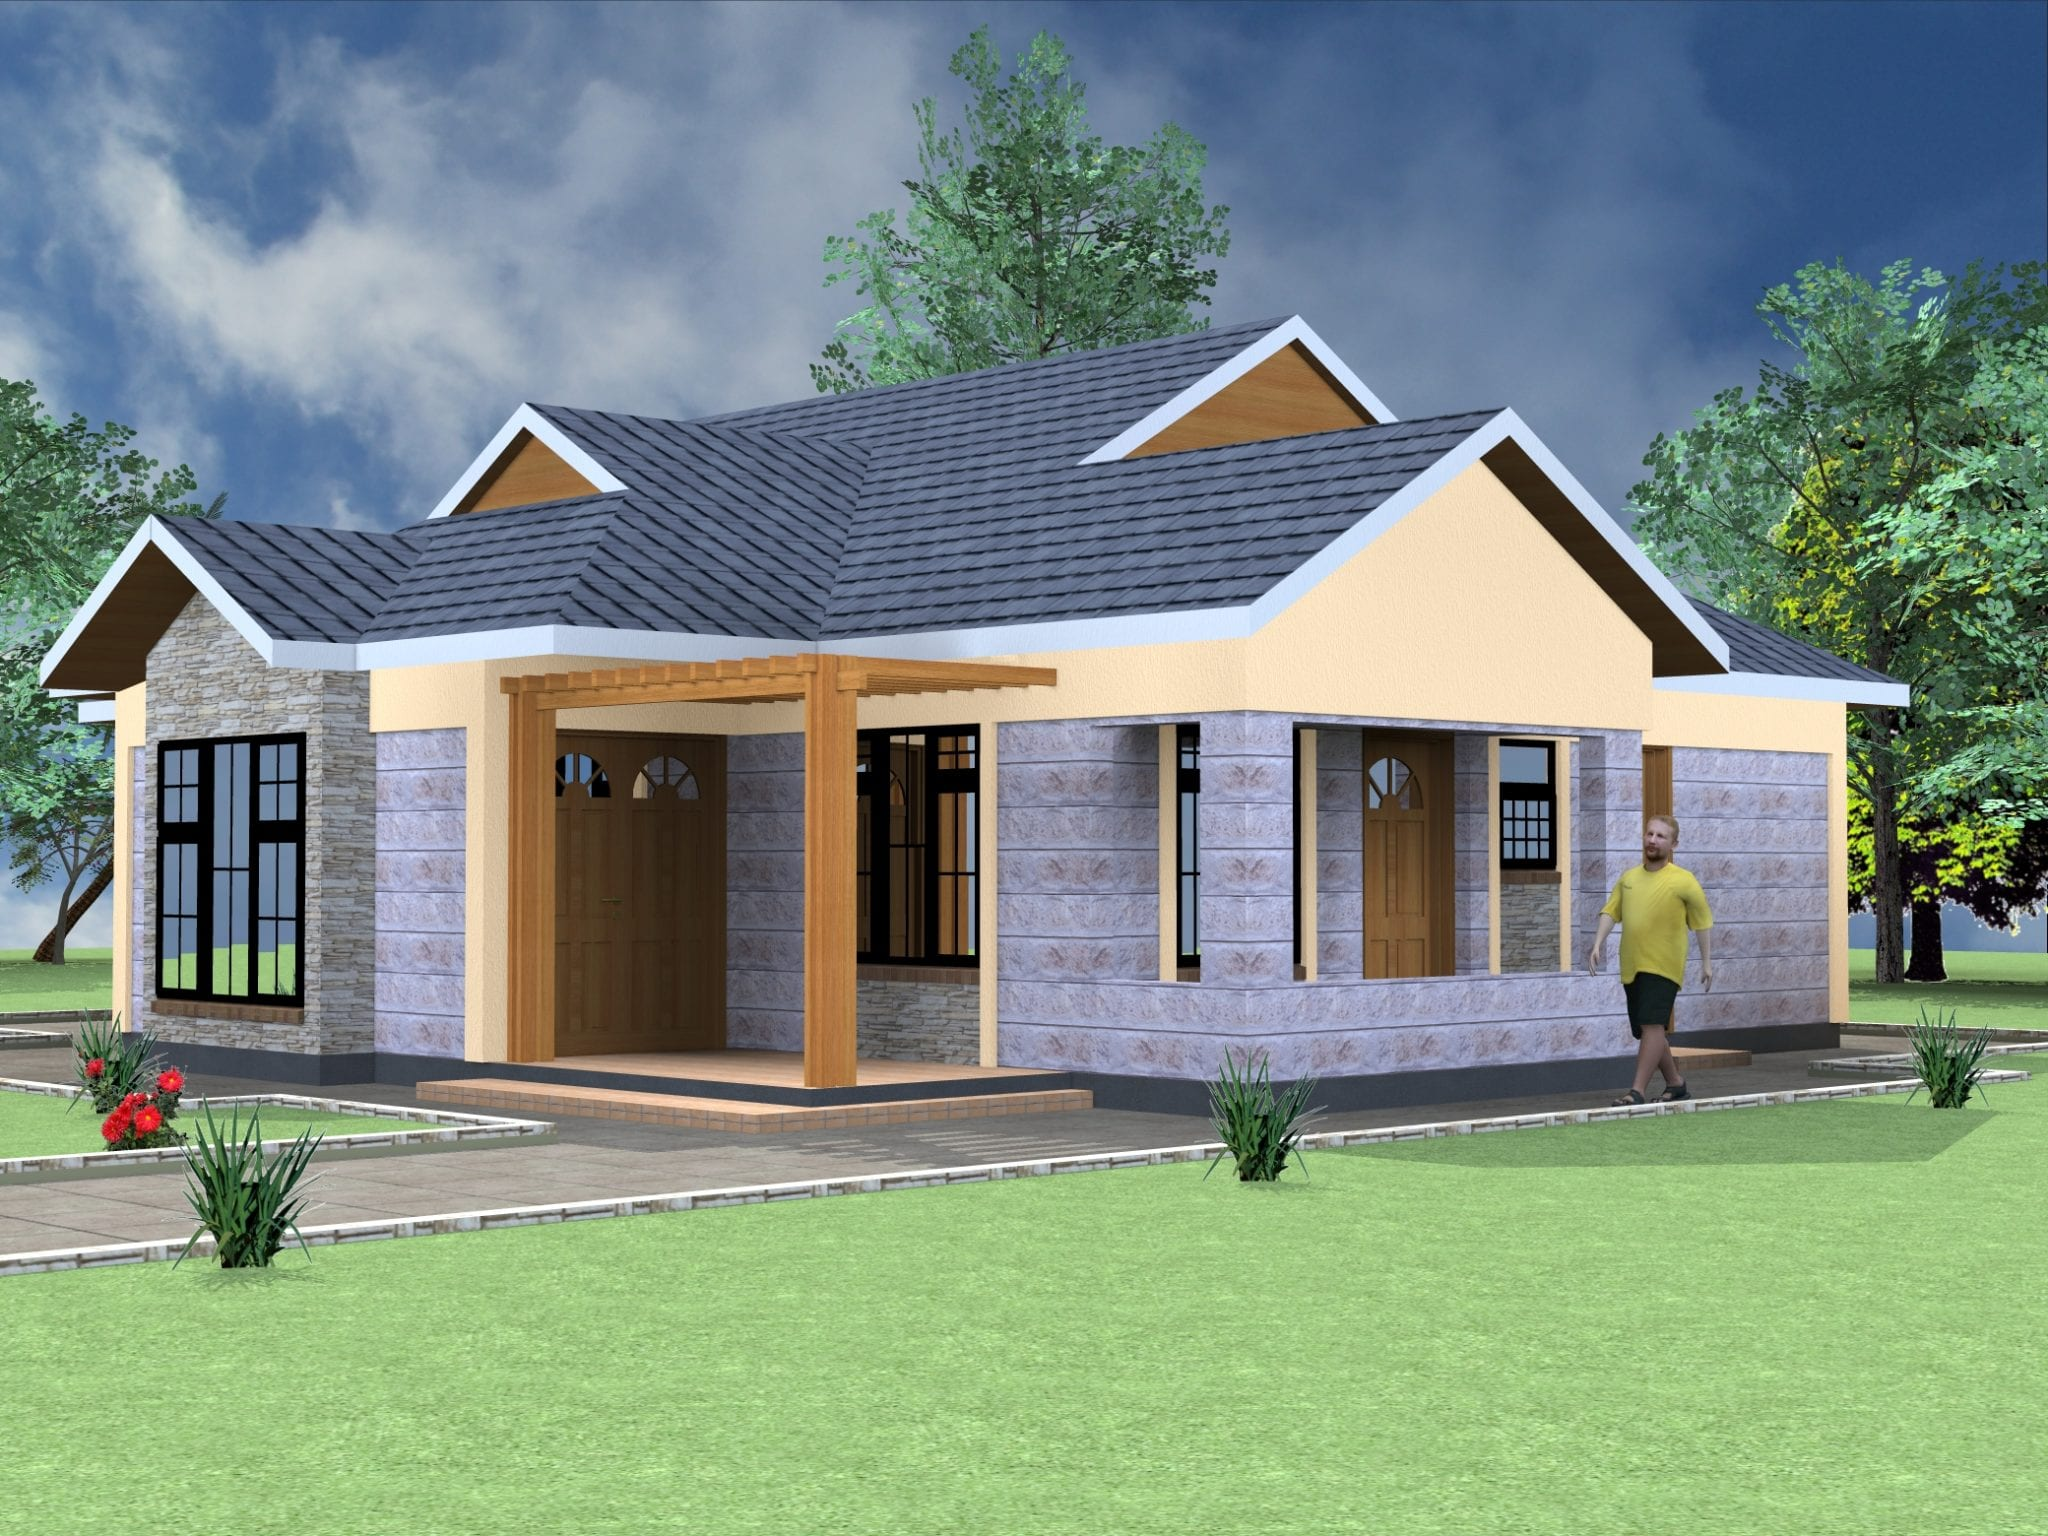 4 Bedroom bungalow architectural design |HPD Consult